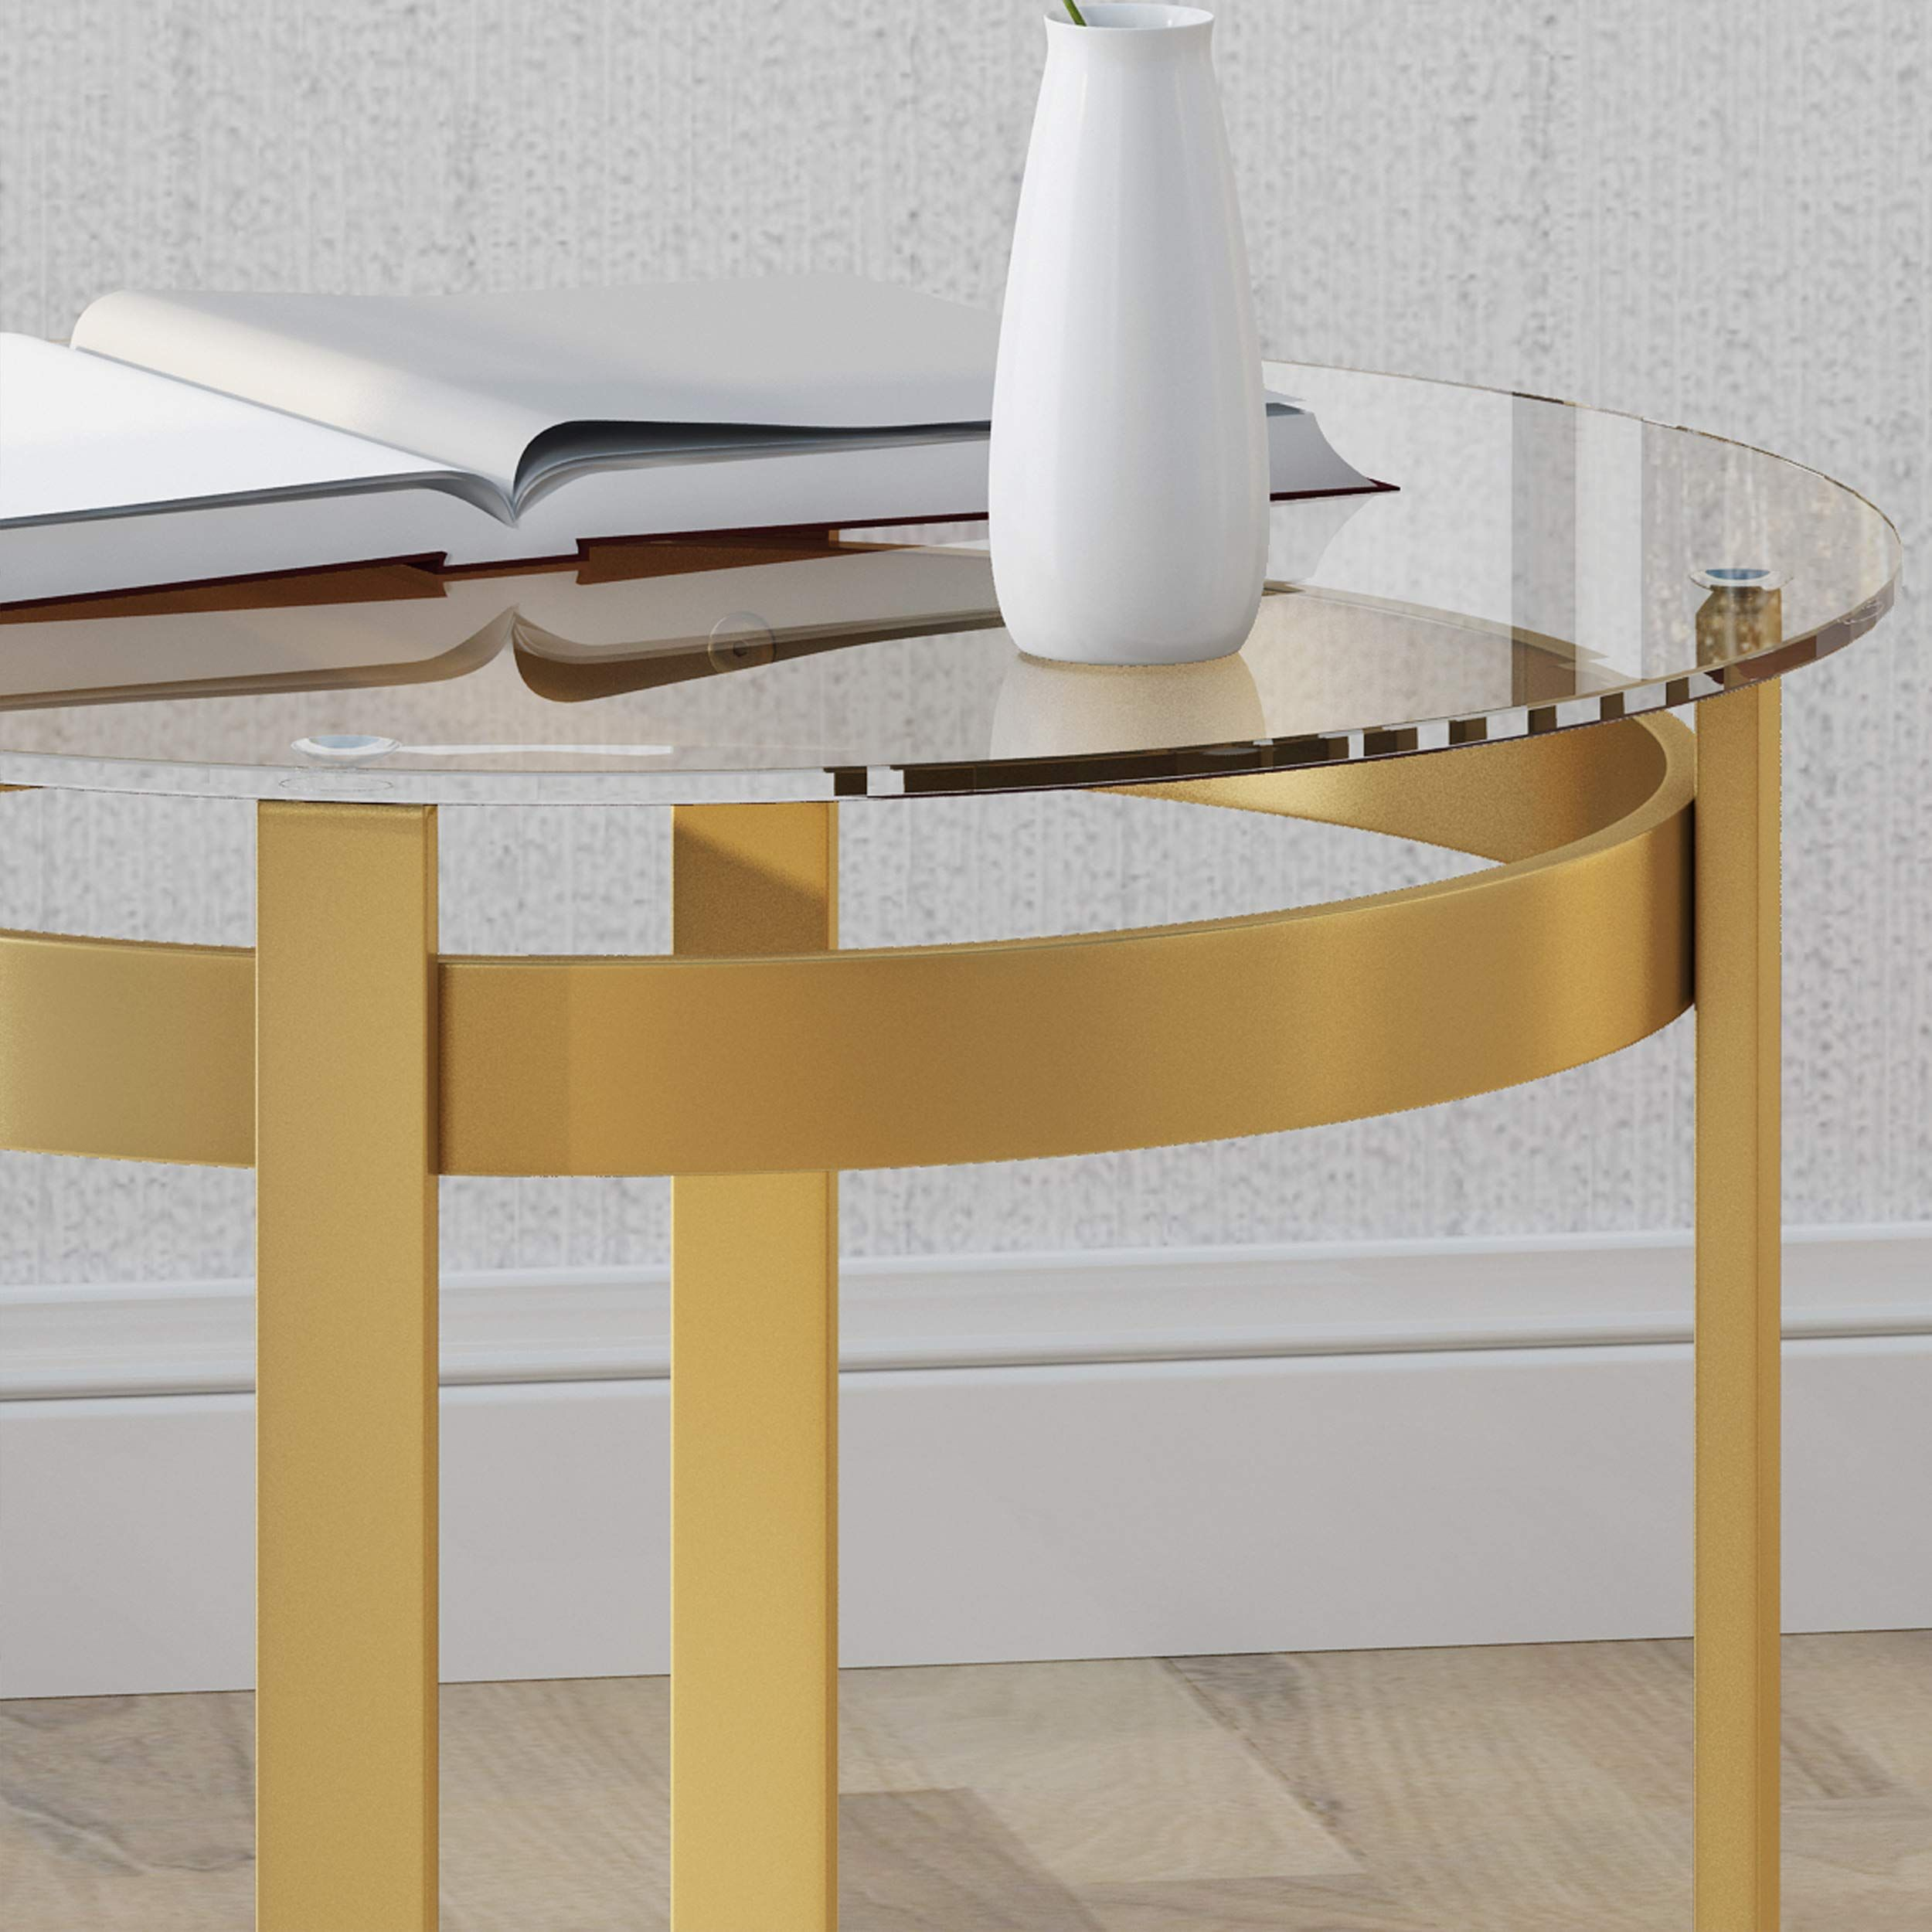 Tate Tempered Glass Coffee Table Round Modern Brass Finish Find Out More Evaluations Of Th Round Glass Coffee Table Round Coffee Table Glass Coffee Table [ 2500 x 2500 Pixel ]